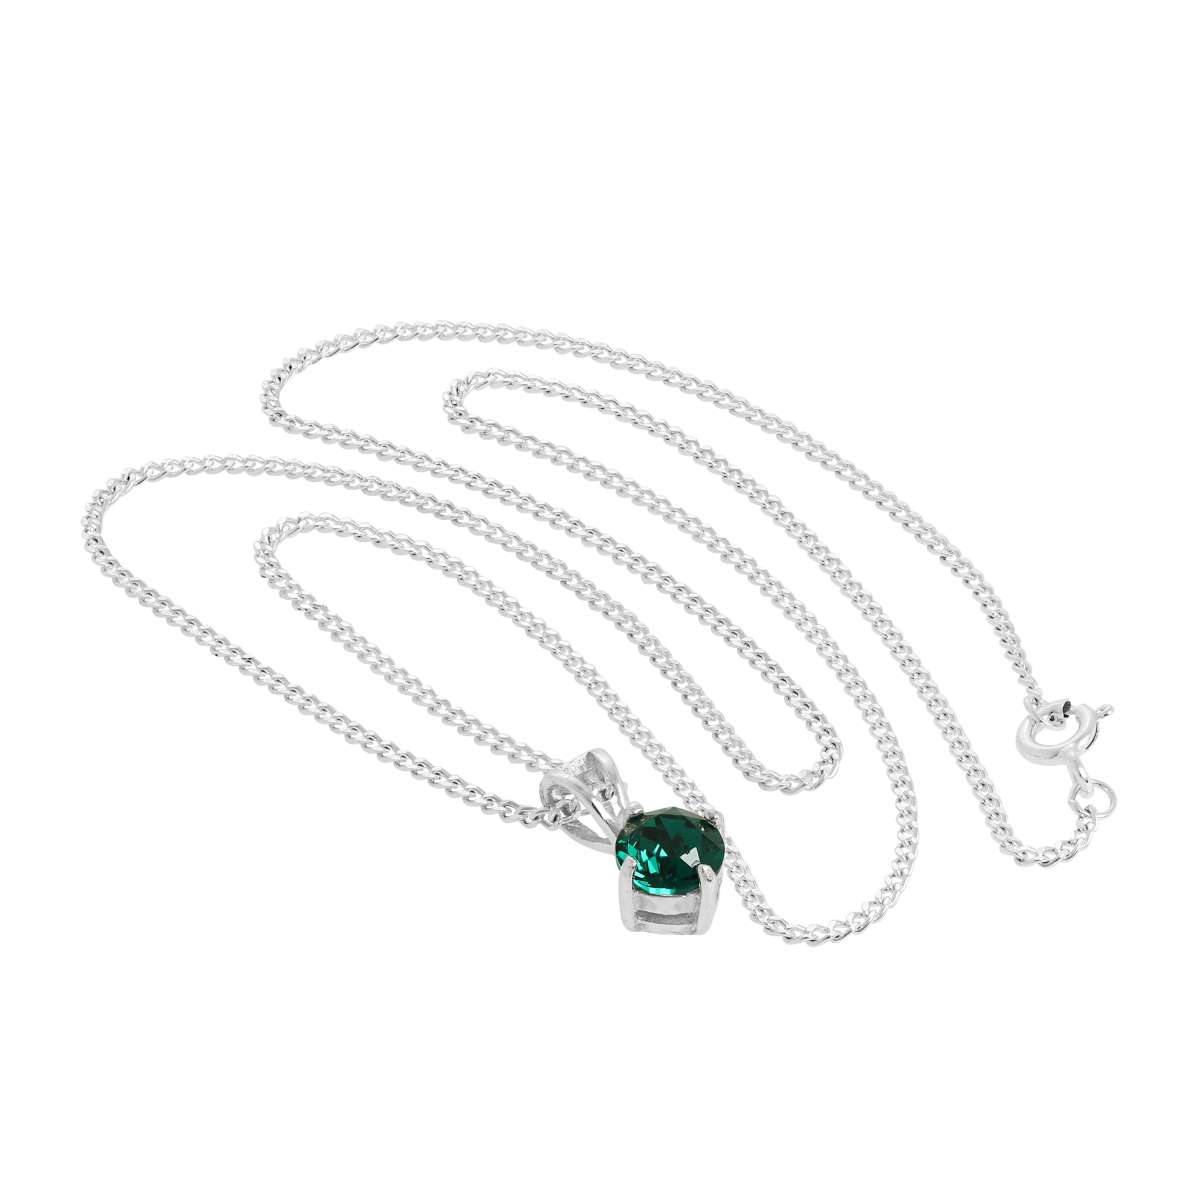 Alterative image for Sterling Silver & Emerald Crystal Made with Swarovski Elements May Birthstone Pendant Necklace 16 - 24 Inches